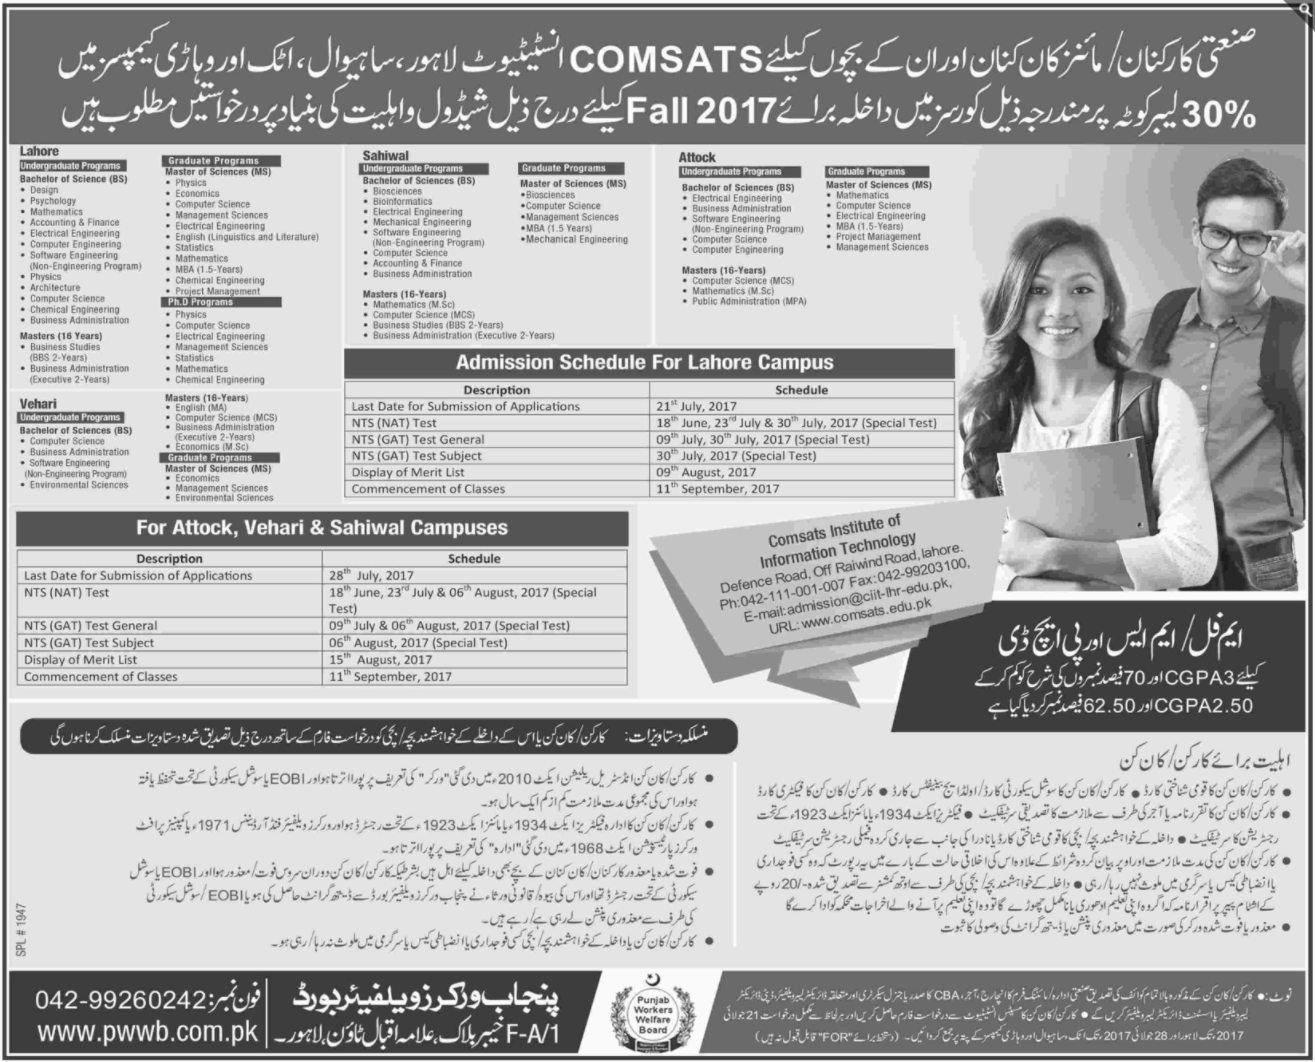 COMSATS Institute of Science & Technology Admissions Open -2017